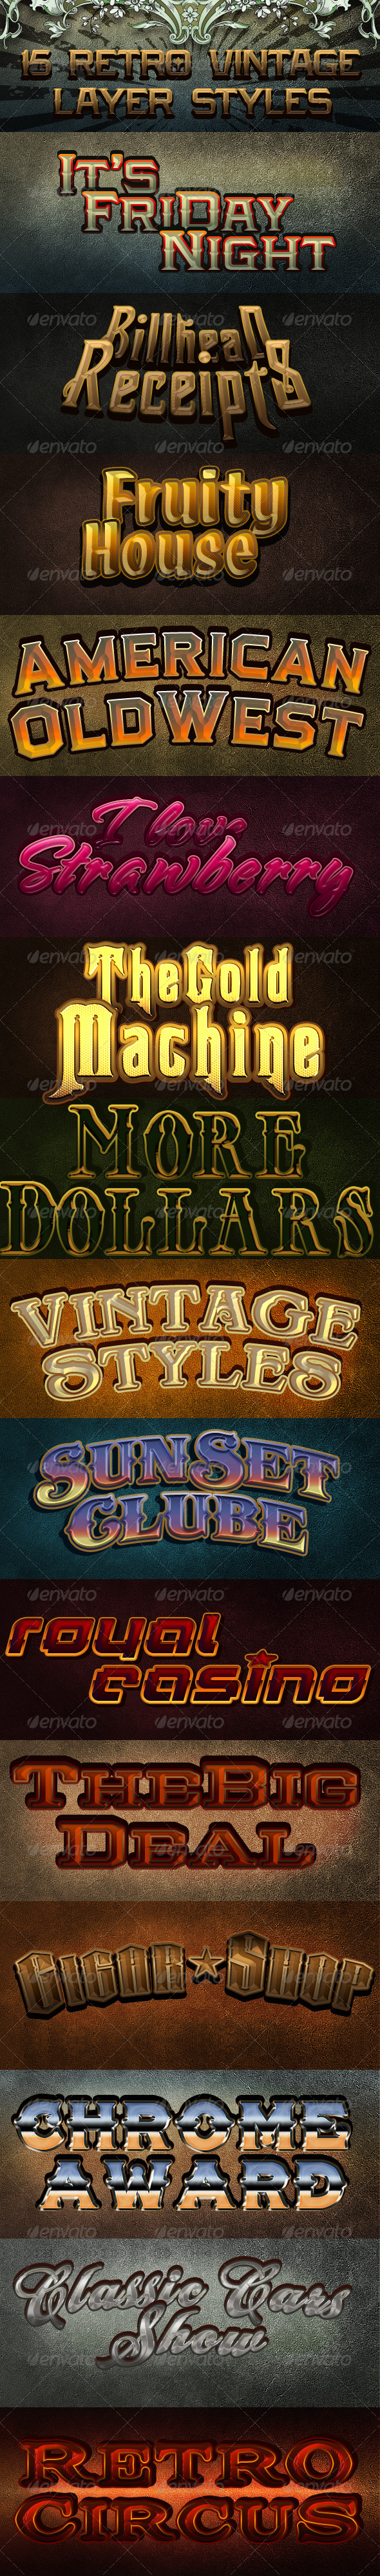 Retro Vintage layer Styles - Text Effects Actions